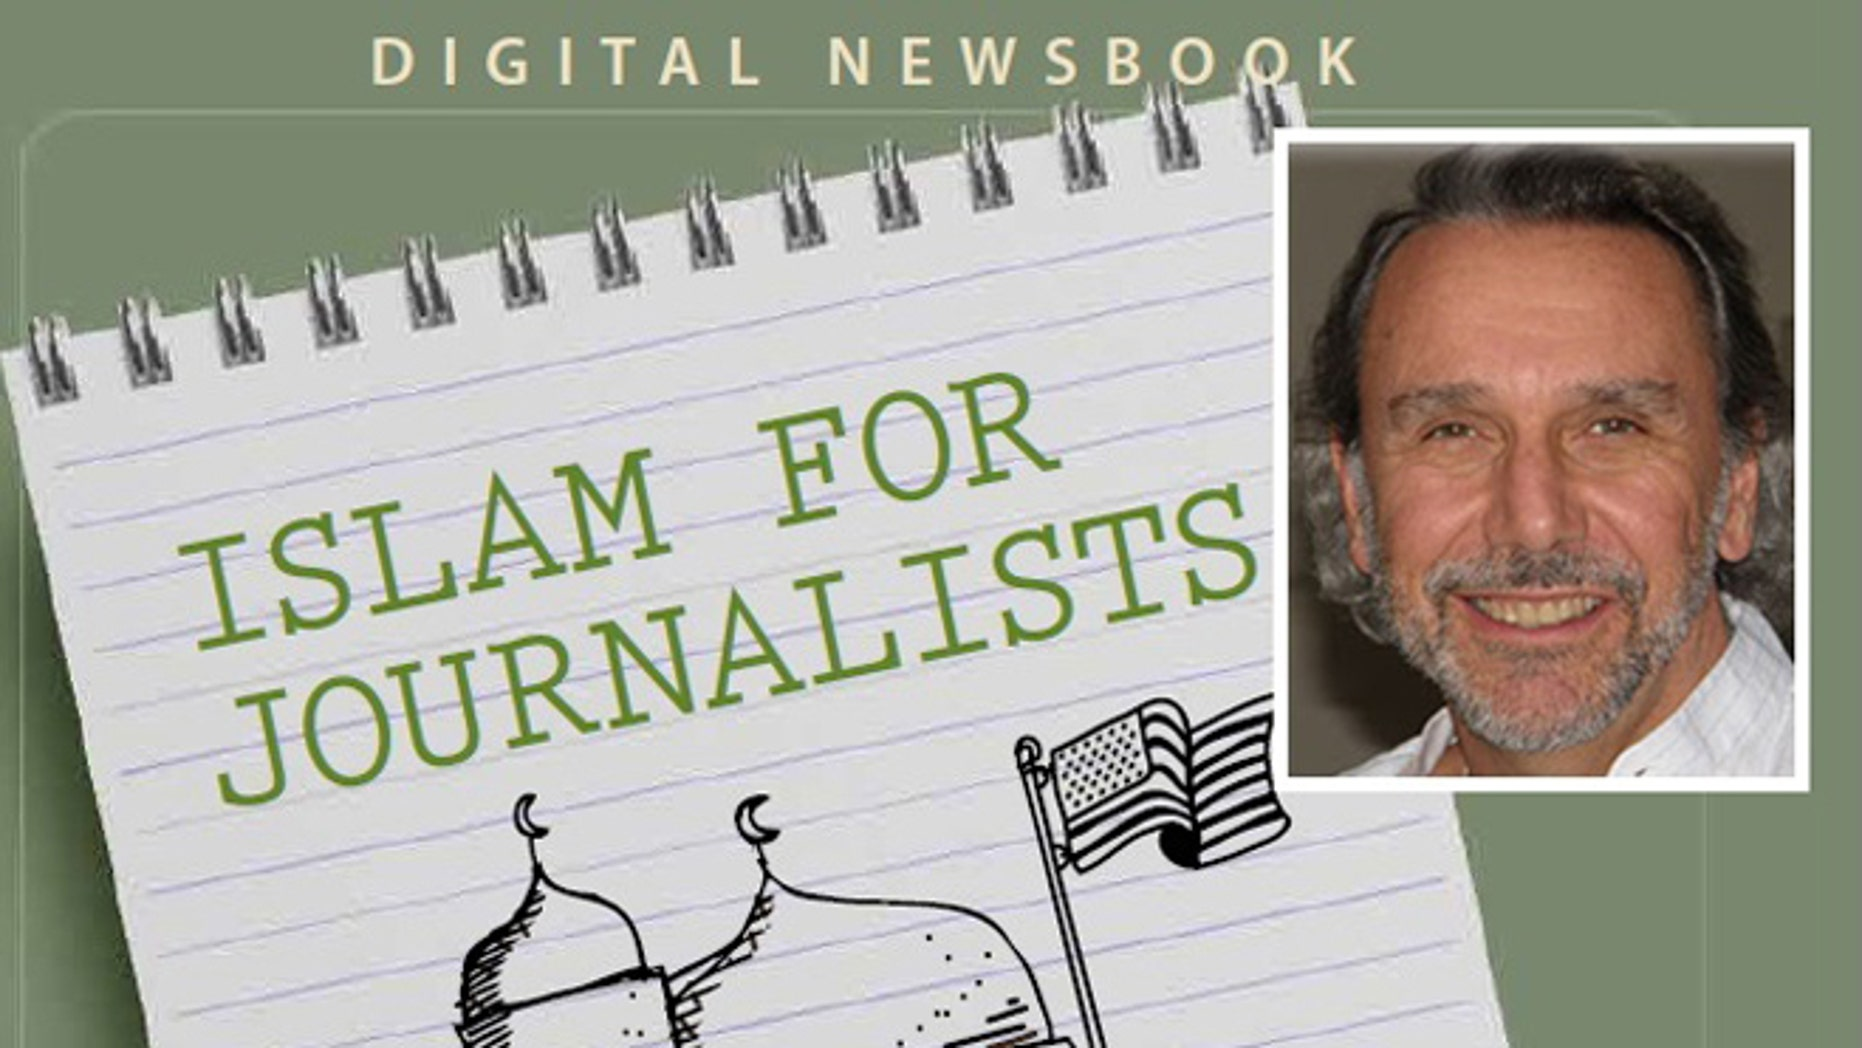 Founding dean of the Edward R. Murrow College of Communication at Washington State University Lawrence Pintak (inset) recently co-edited an e-book meant to be a field guide for journalists when reporting on Islamic issues.